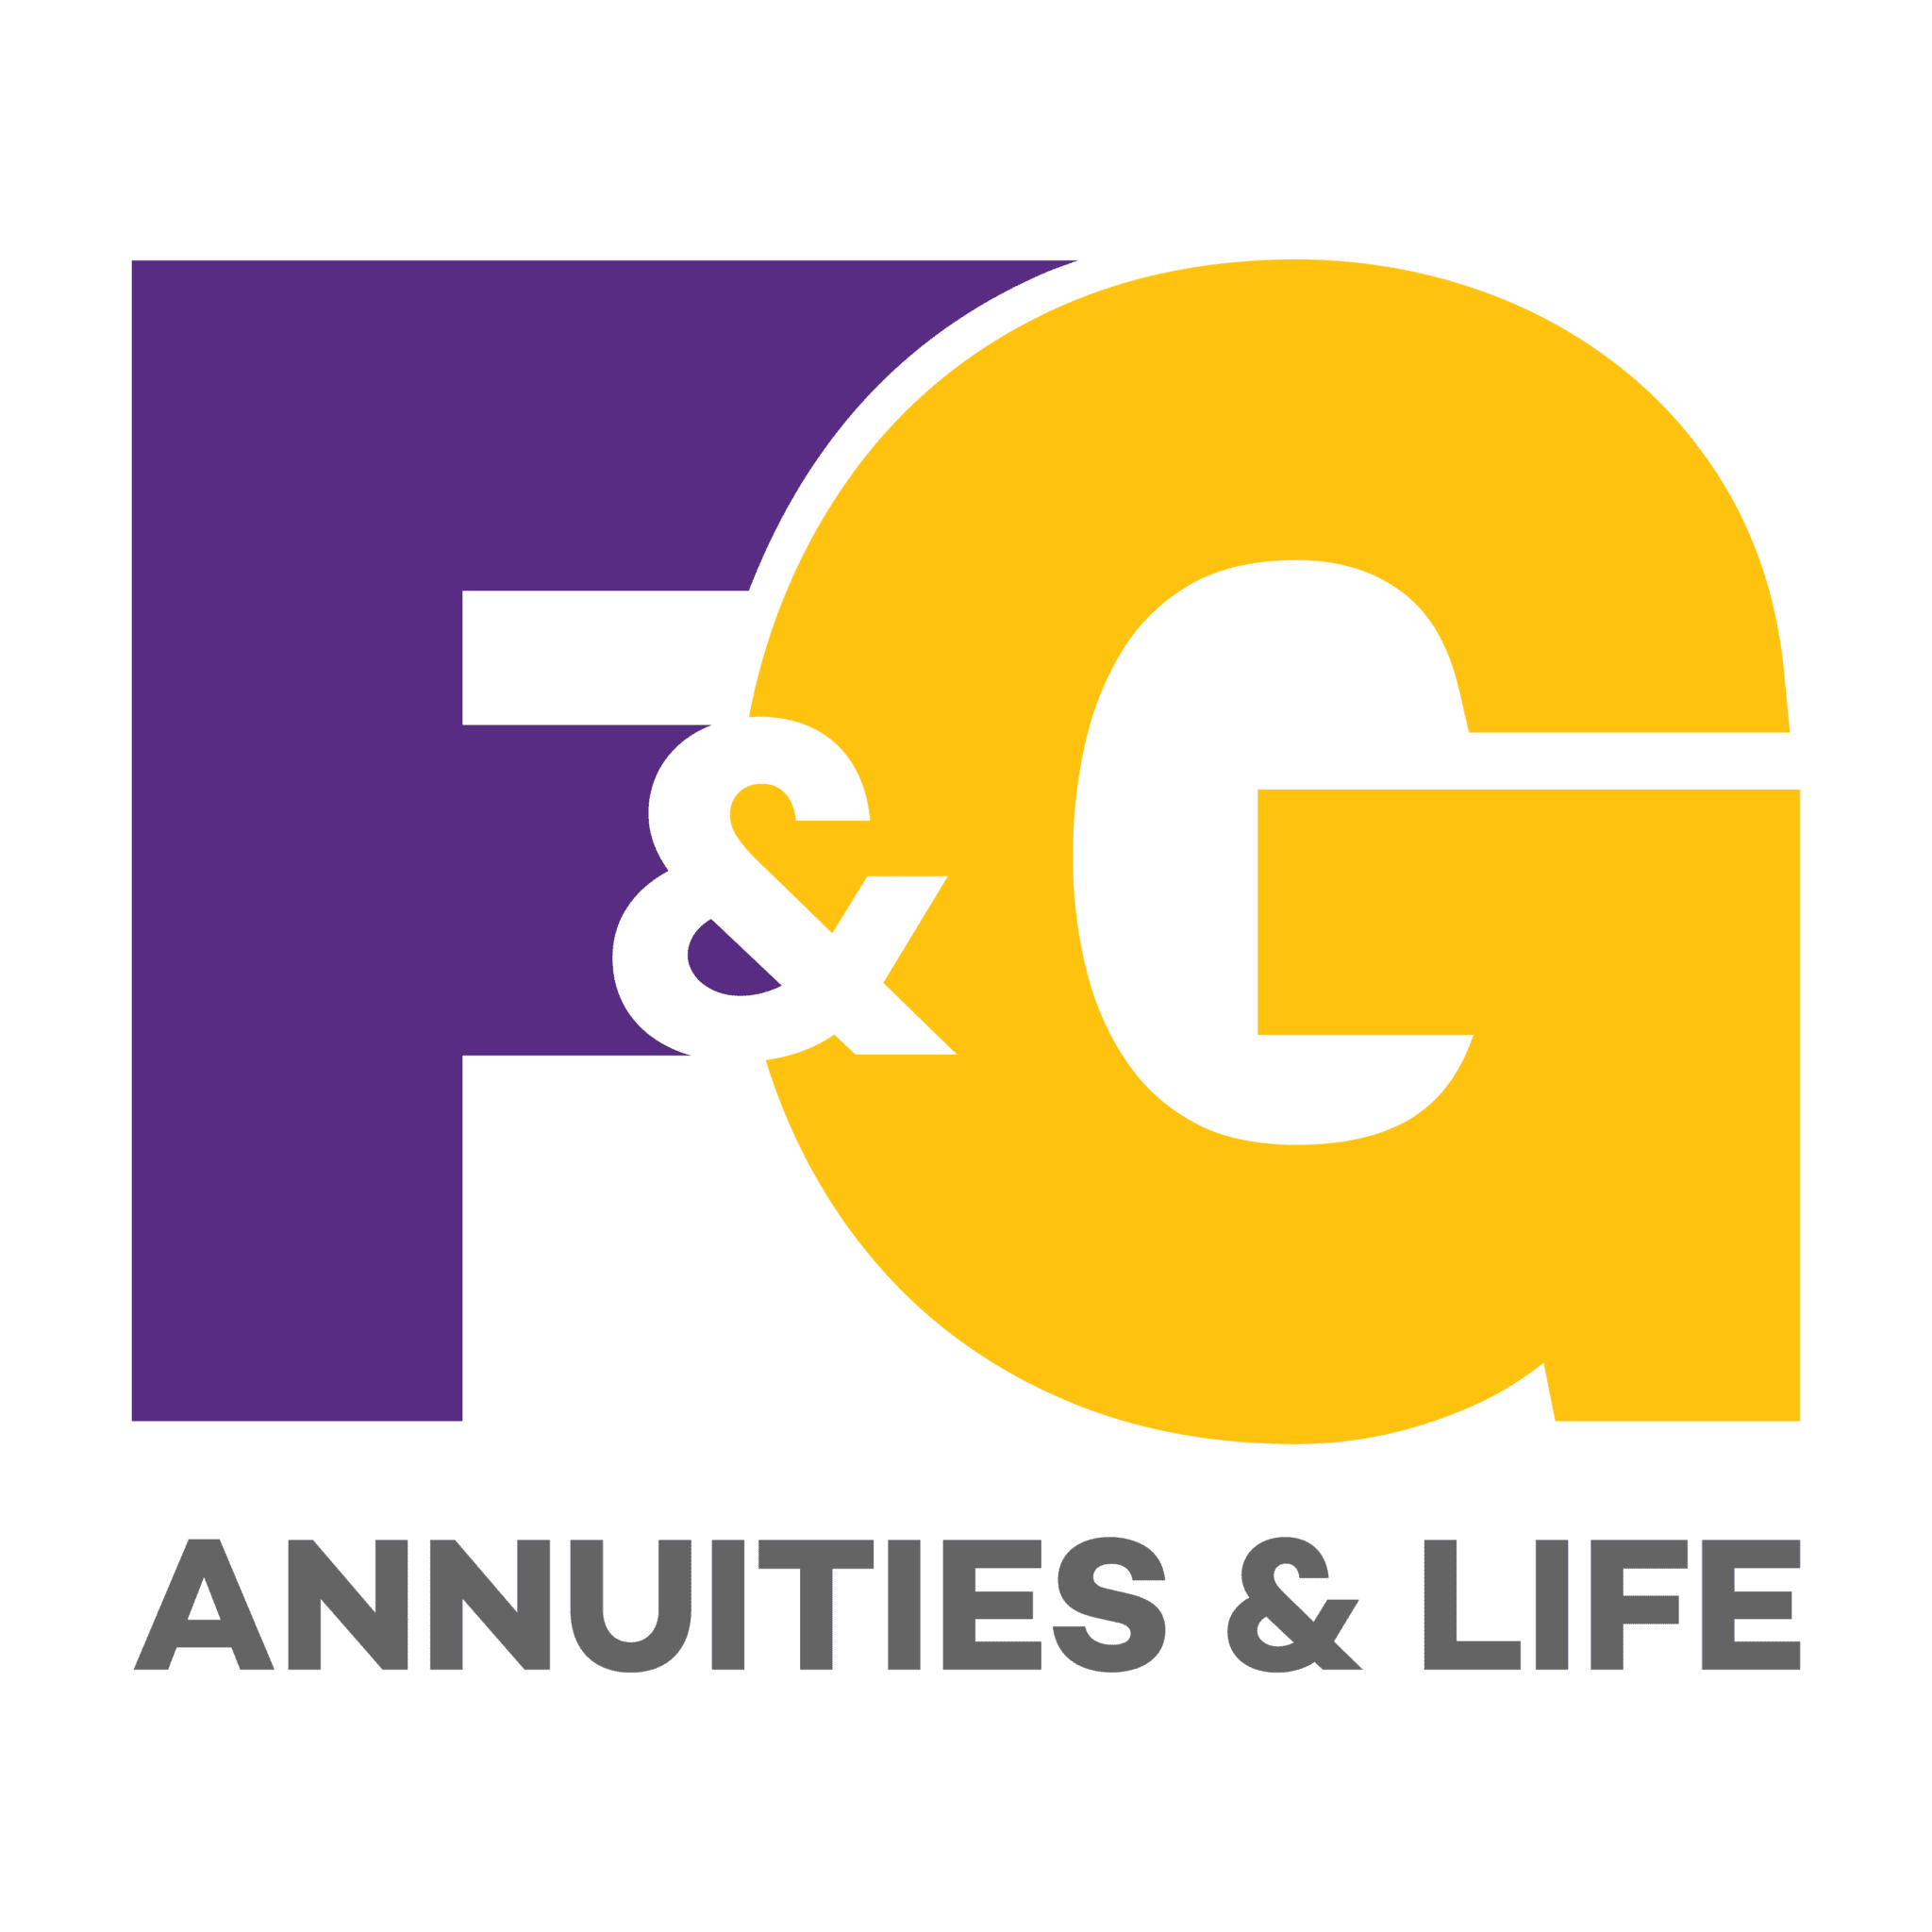 https://retirementrealizedfinancial.com/wp-content/uploads/sites/185/2020/08/FG_Annuities__Life.png